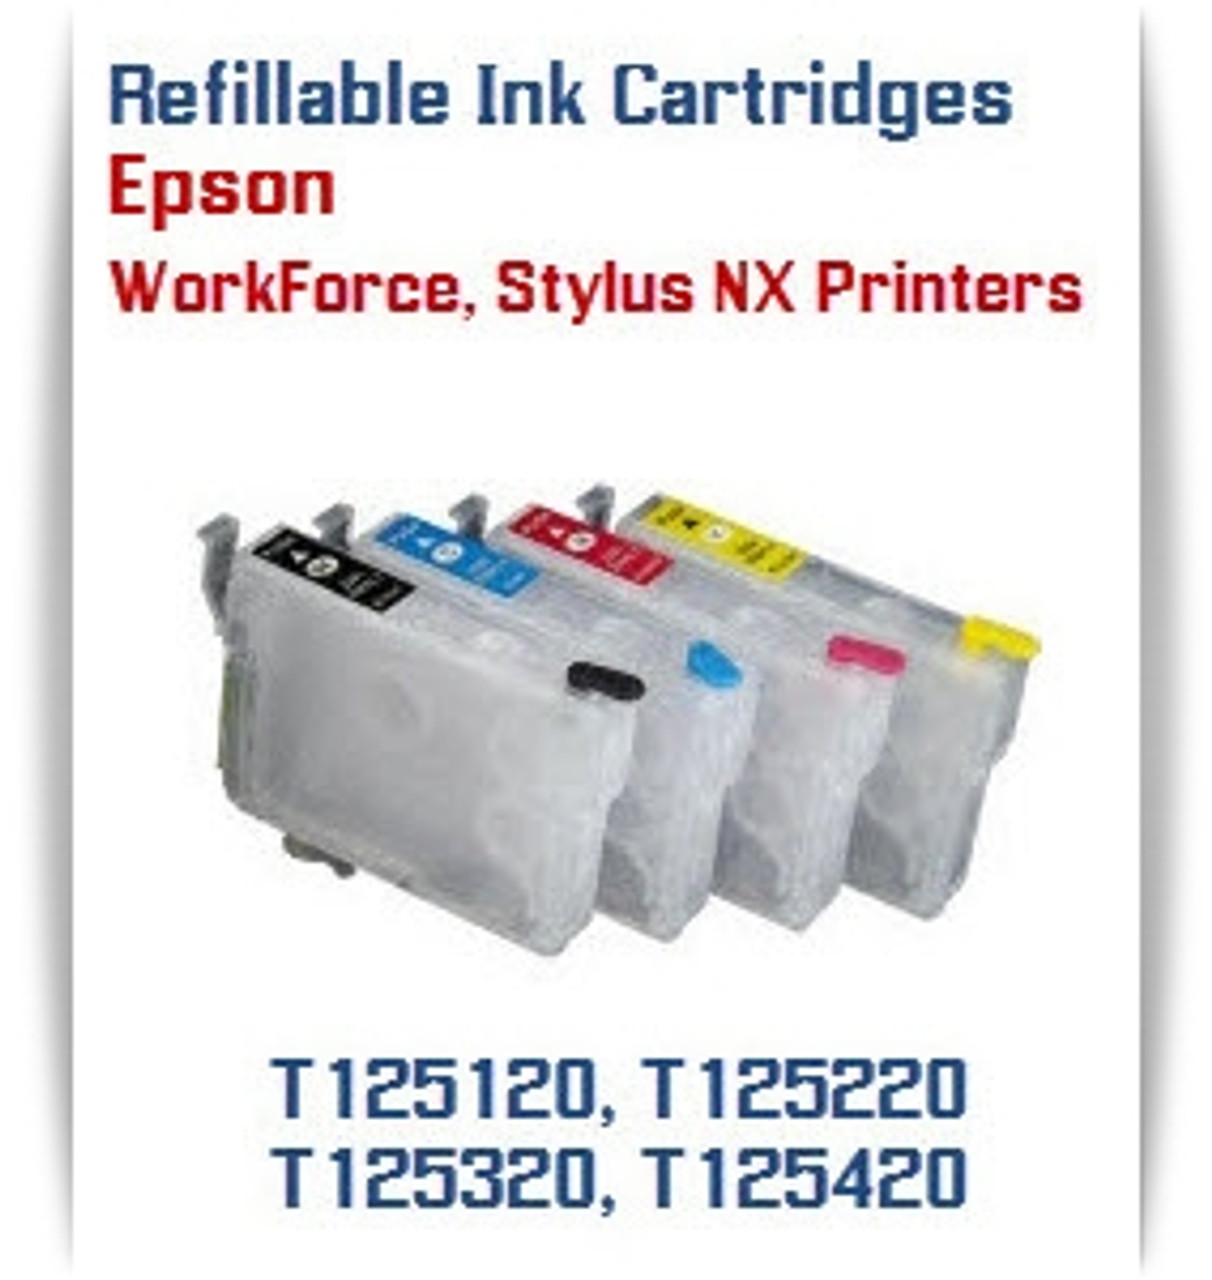 Refillable Epson WorkForce, Stylus NX Printer Ink Cartridges